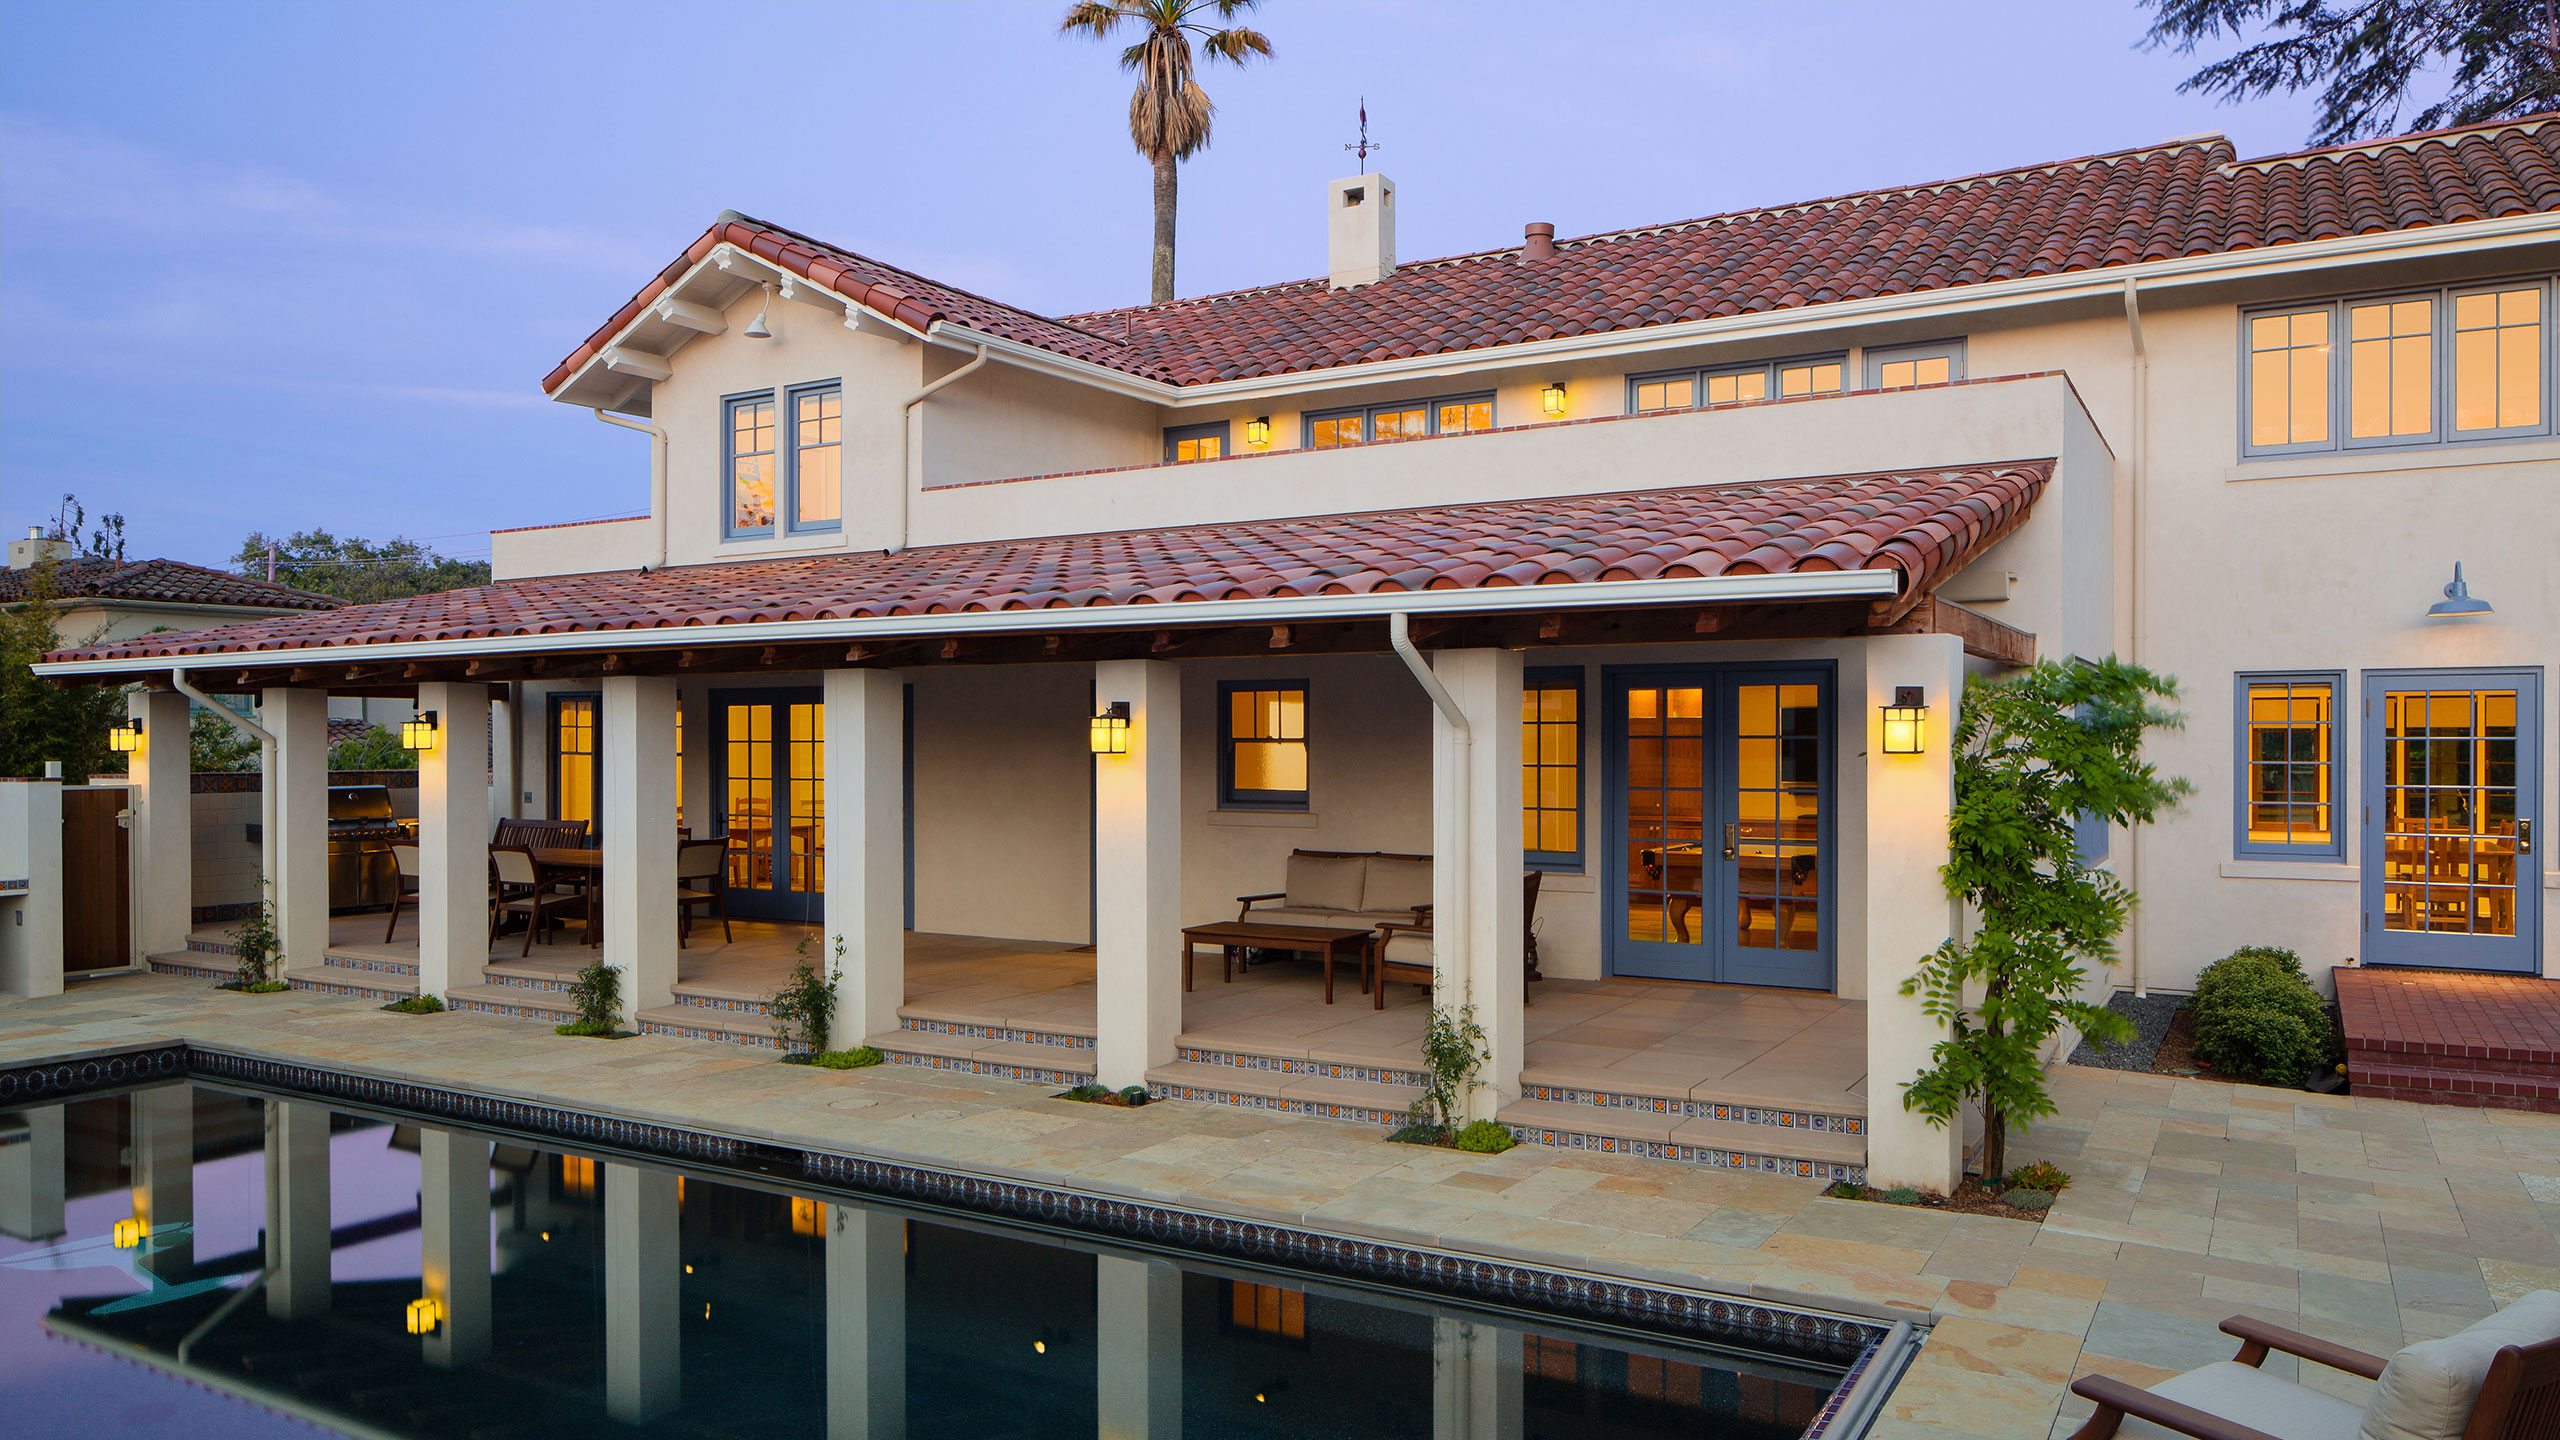 Home-Remodel-Petaluma-D-Street-Pool-covered-terrace-with-columns